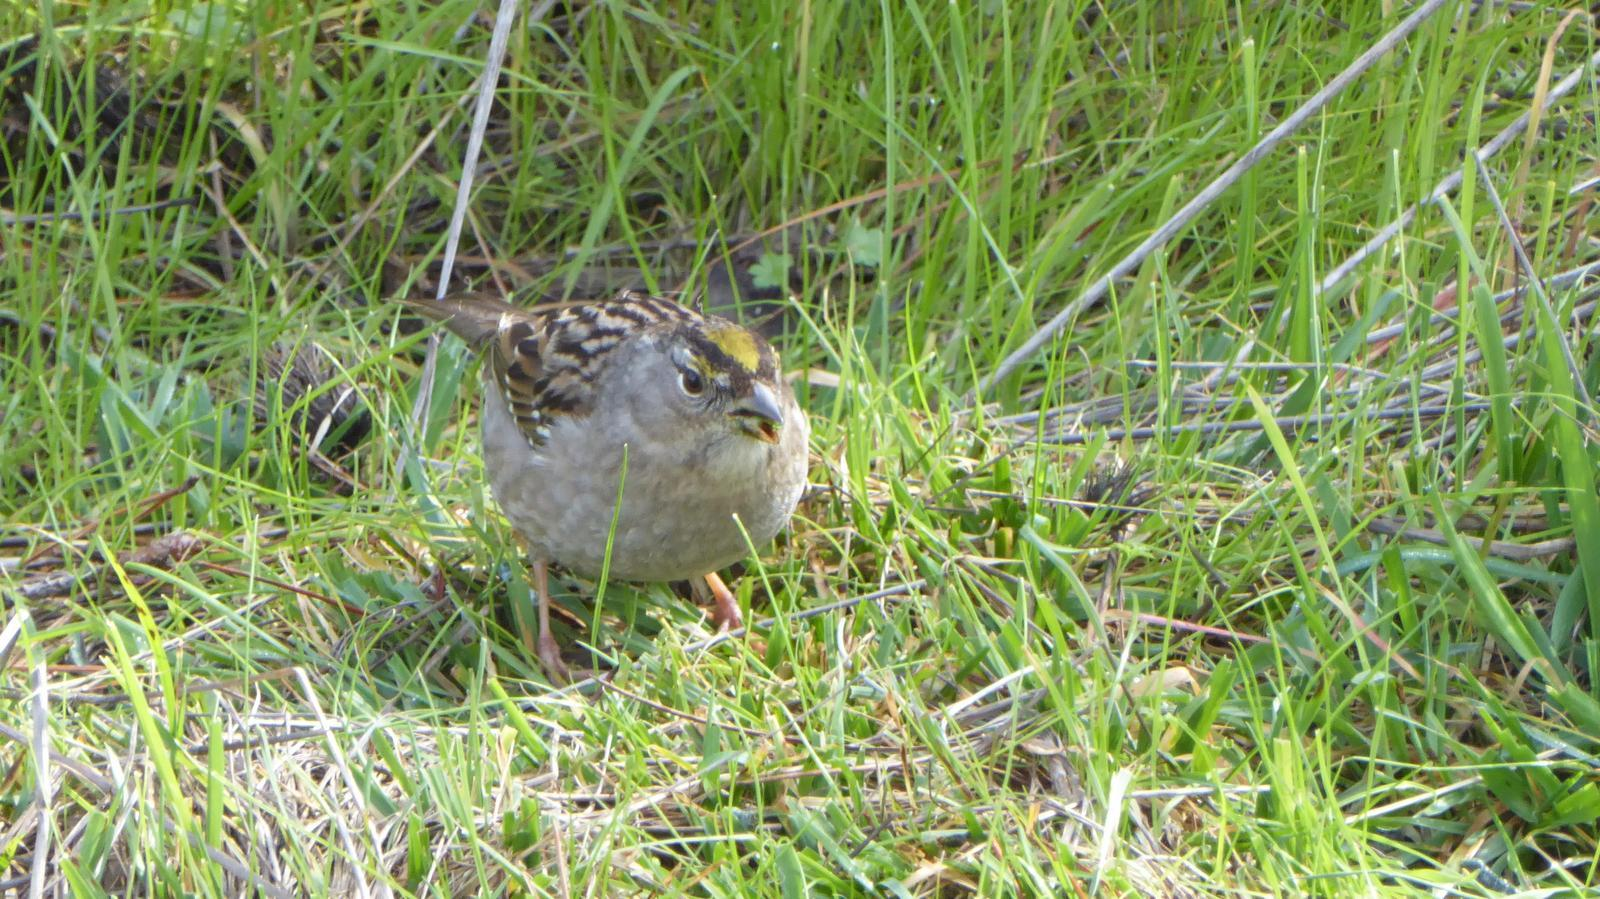 Golden-crowned Sparrow Photo by Daliel Leite